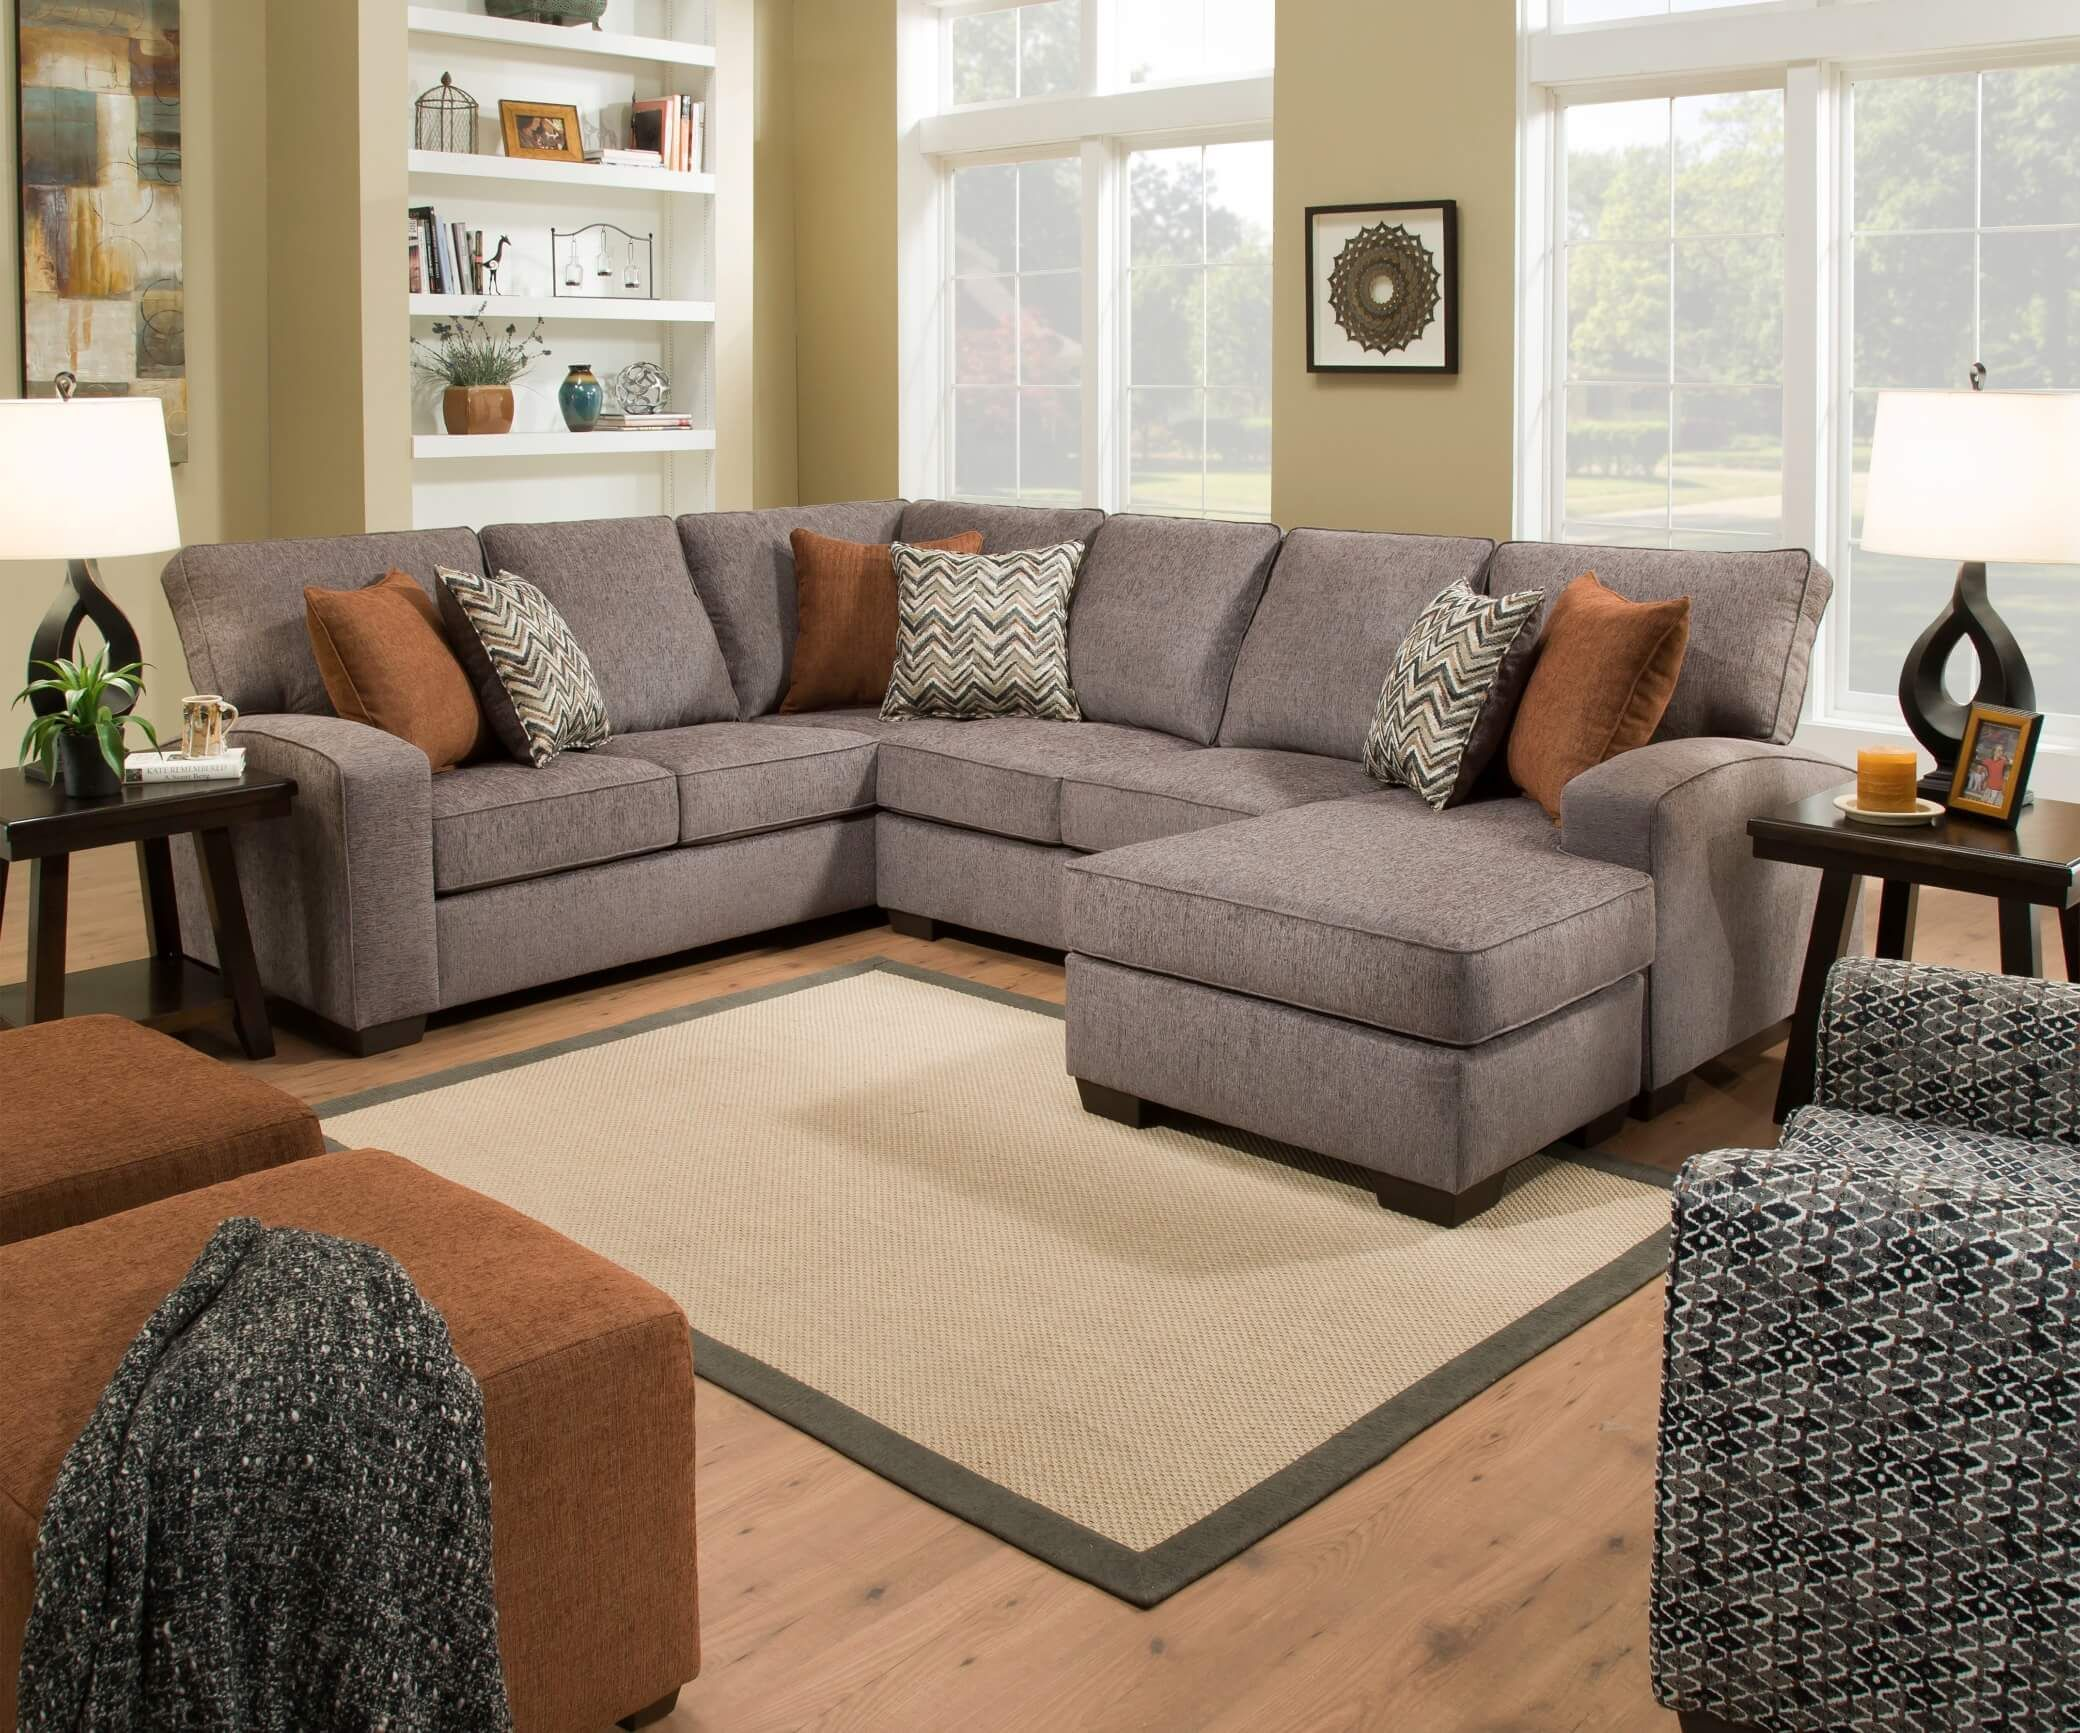 Endurance Grain Sectional With Chaise Urban Furniture Outlet In 2020 Living Room Furniture Layout Furniture Layout Furniture